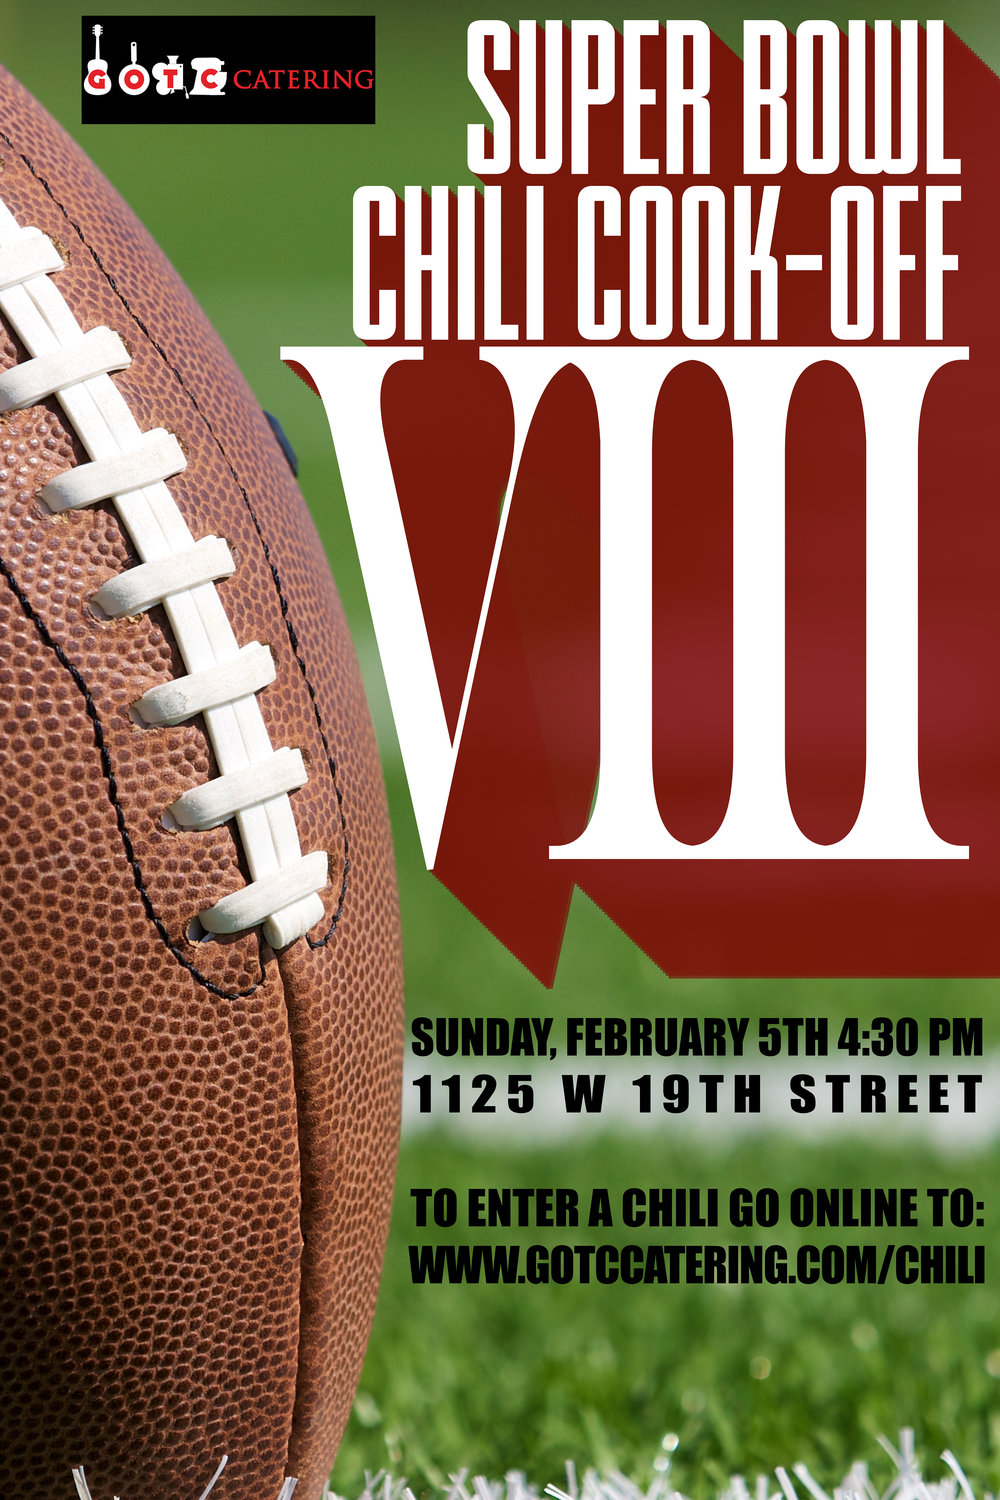 Super Bowl Chili Cook-Off VIII